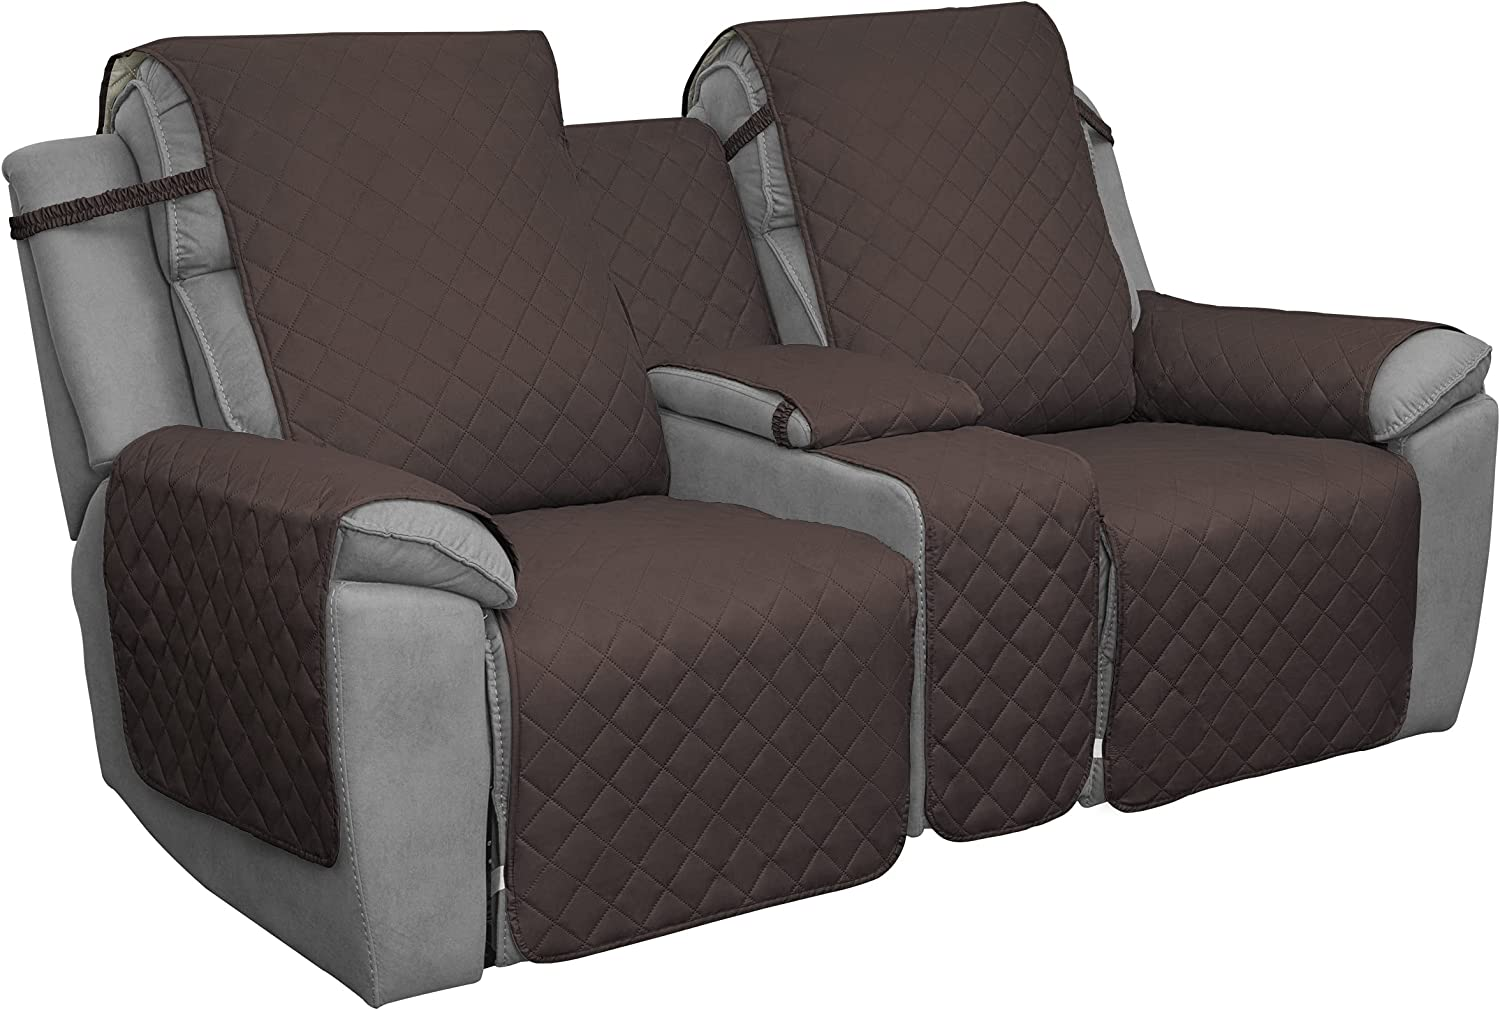 Easy-Going Loveseat Recliner Cover with Console, Reversible Couch Cover for Living Room, Split Sofa Cover for Each Seat with Elastic Straps for Kids, Dogs, Pets(2 Seater, Chocolate/Beige)